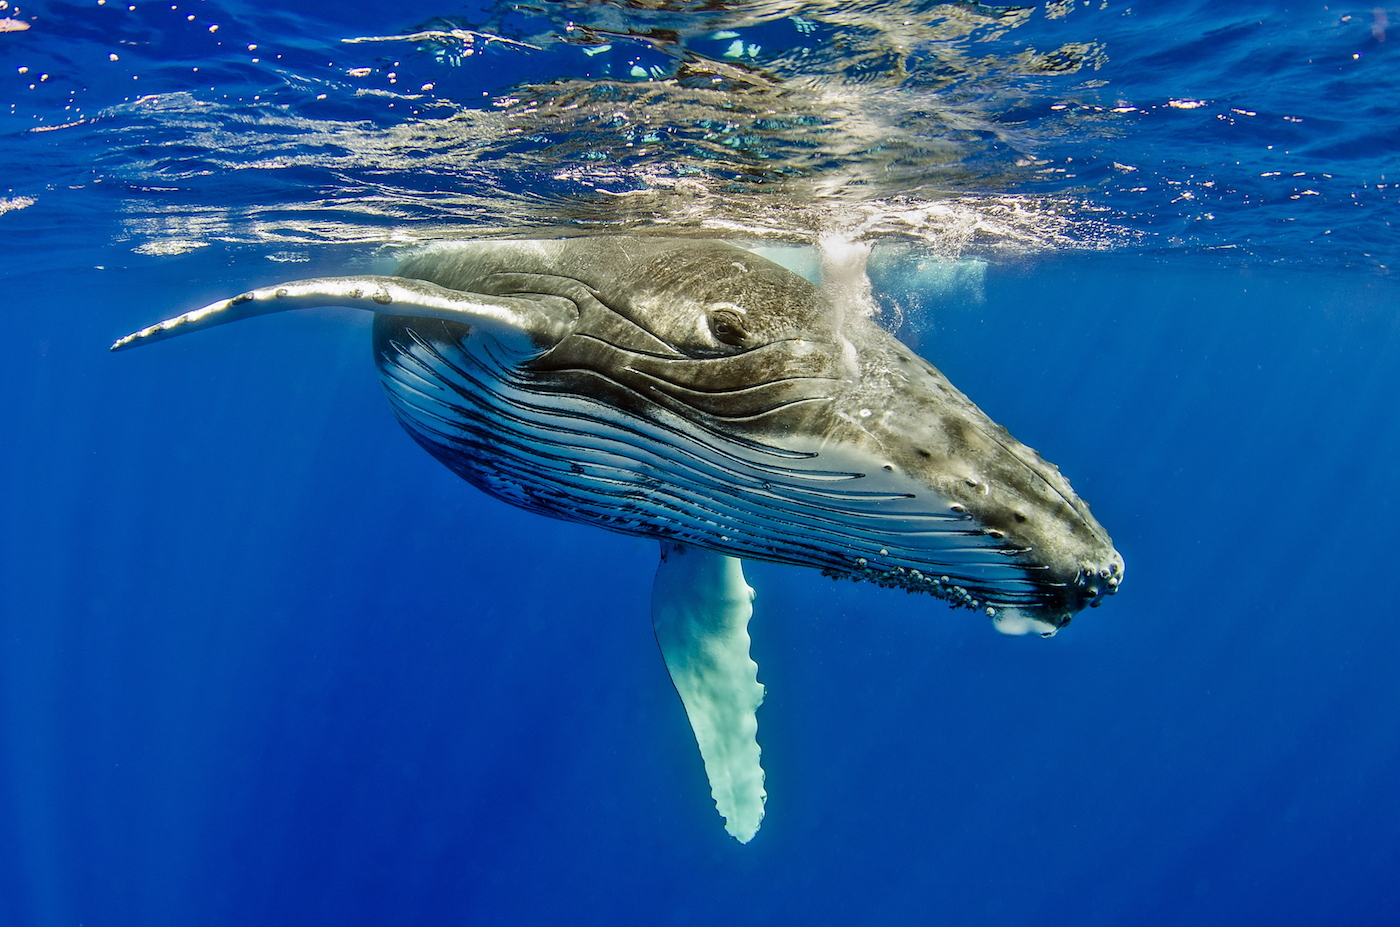 A new report from Murdoch University is warning that microplastics are particularly dangerous for filter-feeding animals such whales.